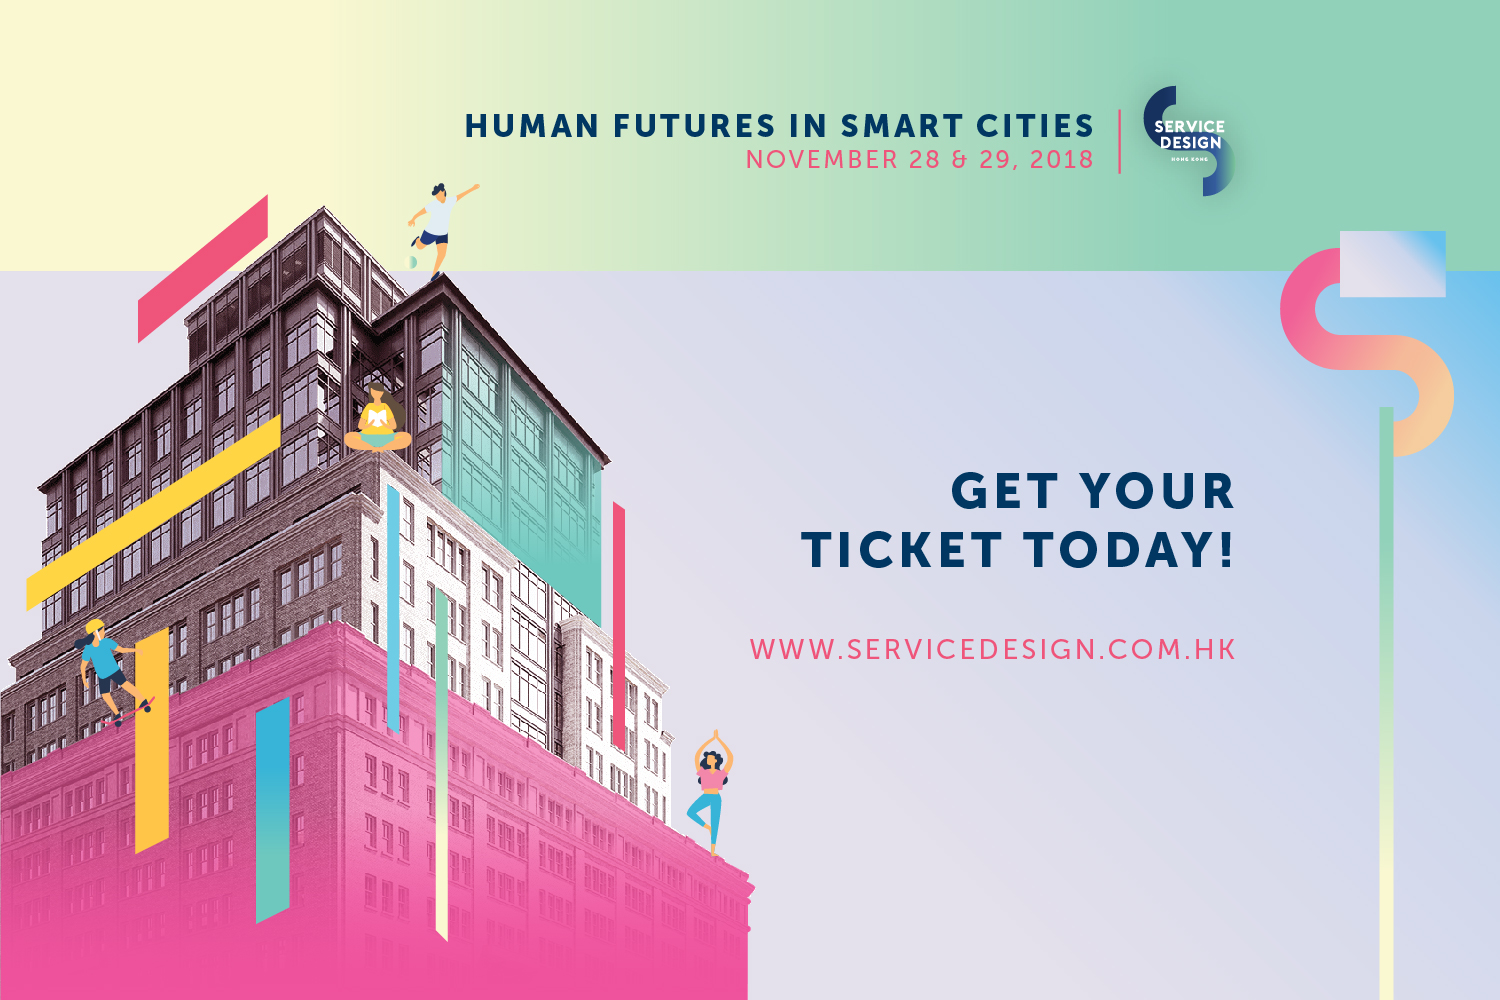 Supporting Event - Service Design Hong Kong - Human Futures in Smart Cities